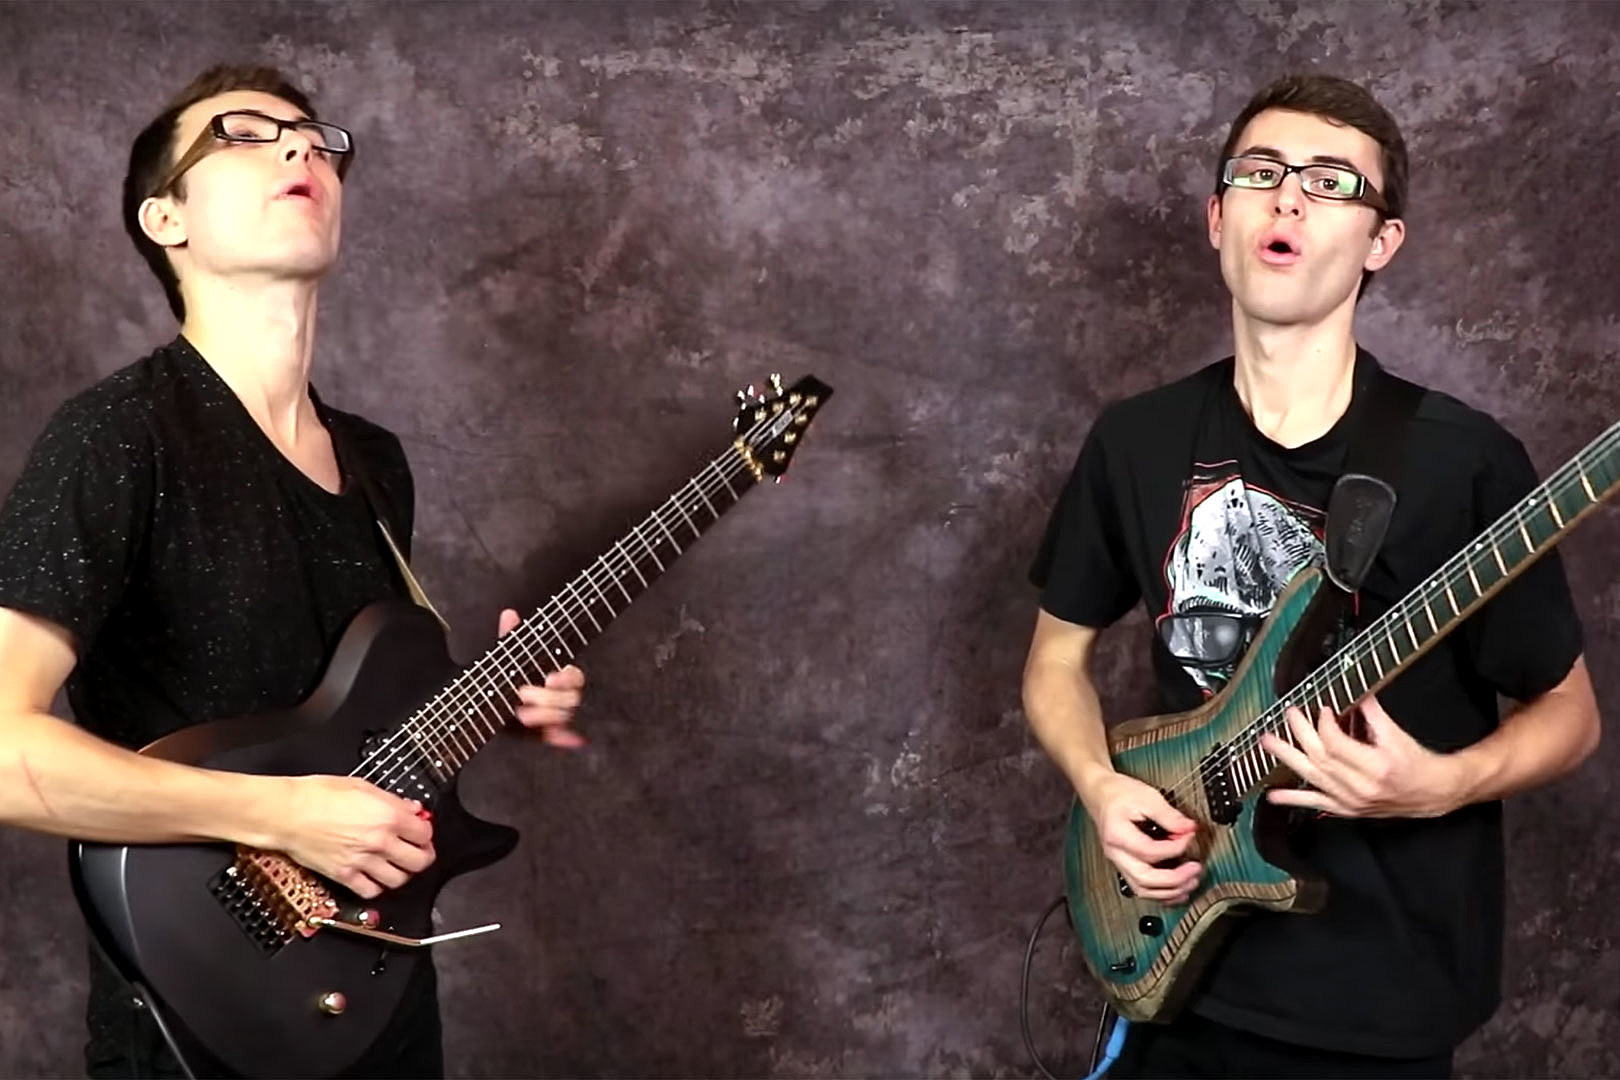 Watch YouTube Star Stevie T Add a Dragonforce Touch to Ramones, Green Day + Weezer Classics